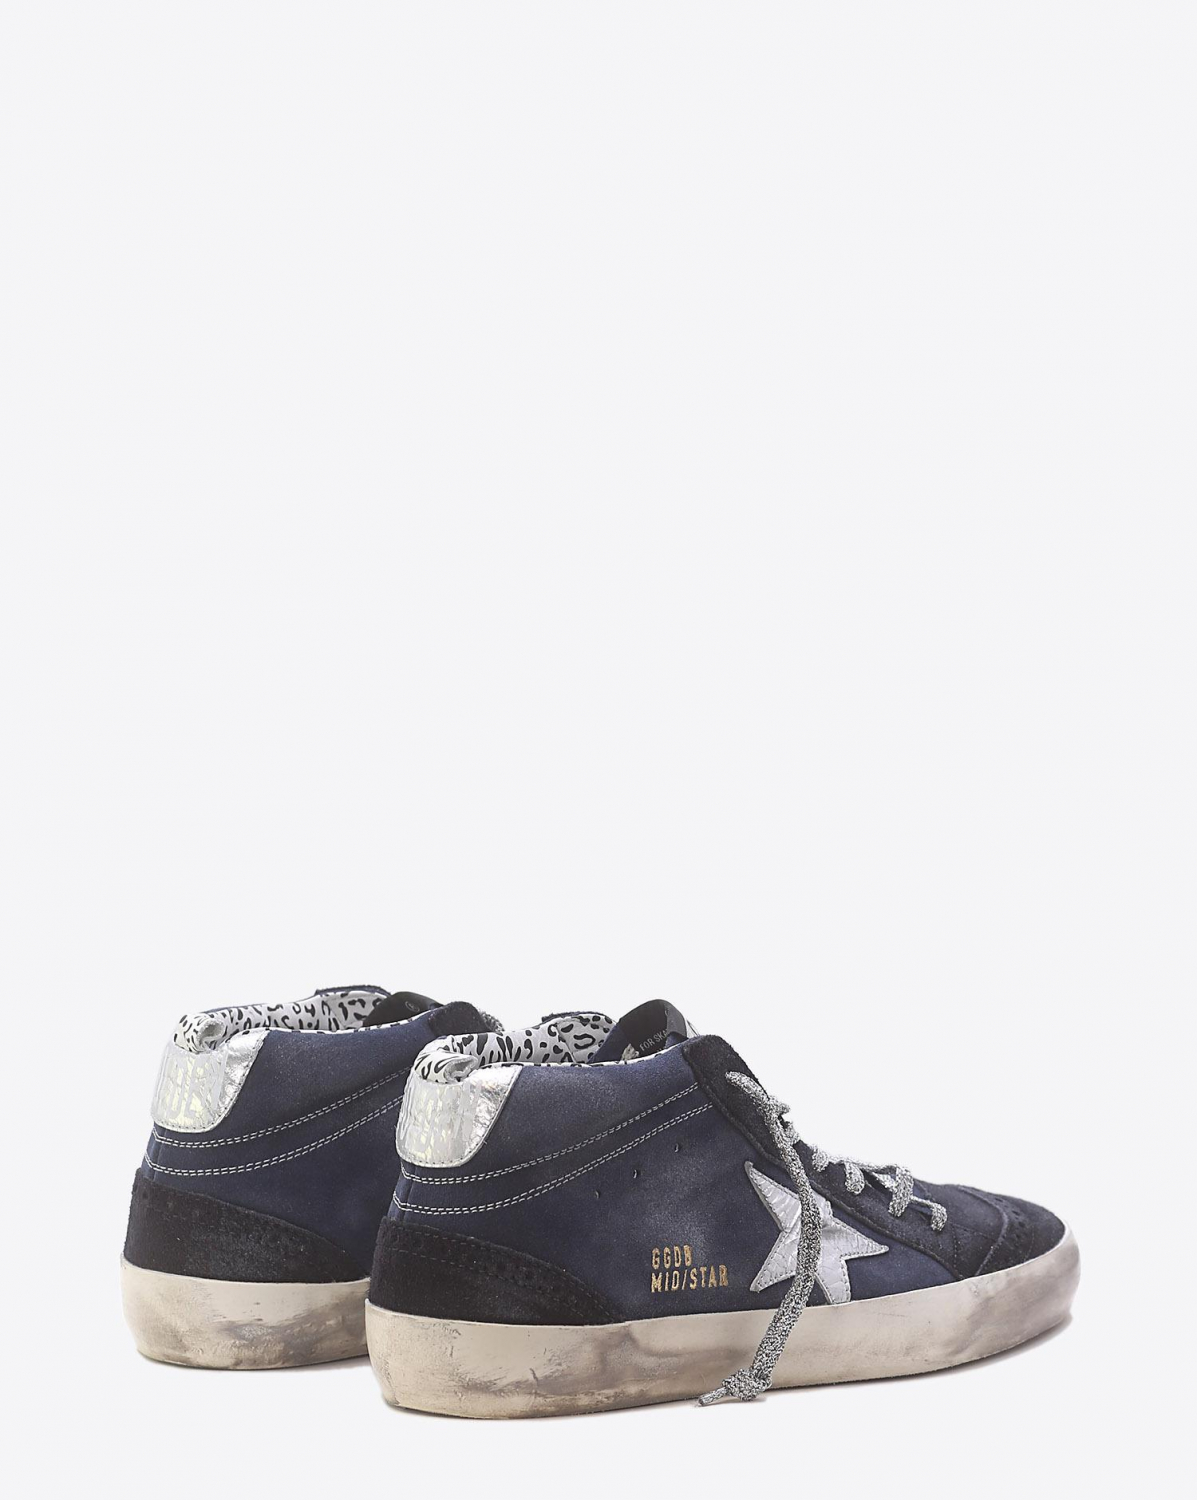 Golden Goose Woman Pré-Collection Sneakers Mid Star Indigo Suede-Crackled Silver Star